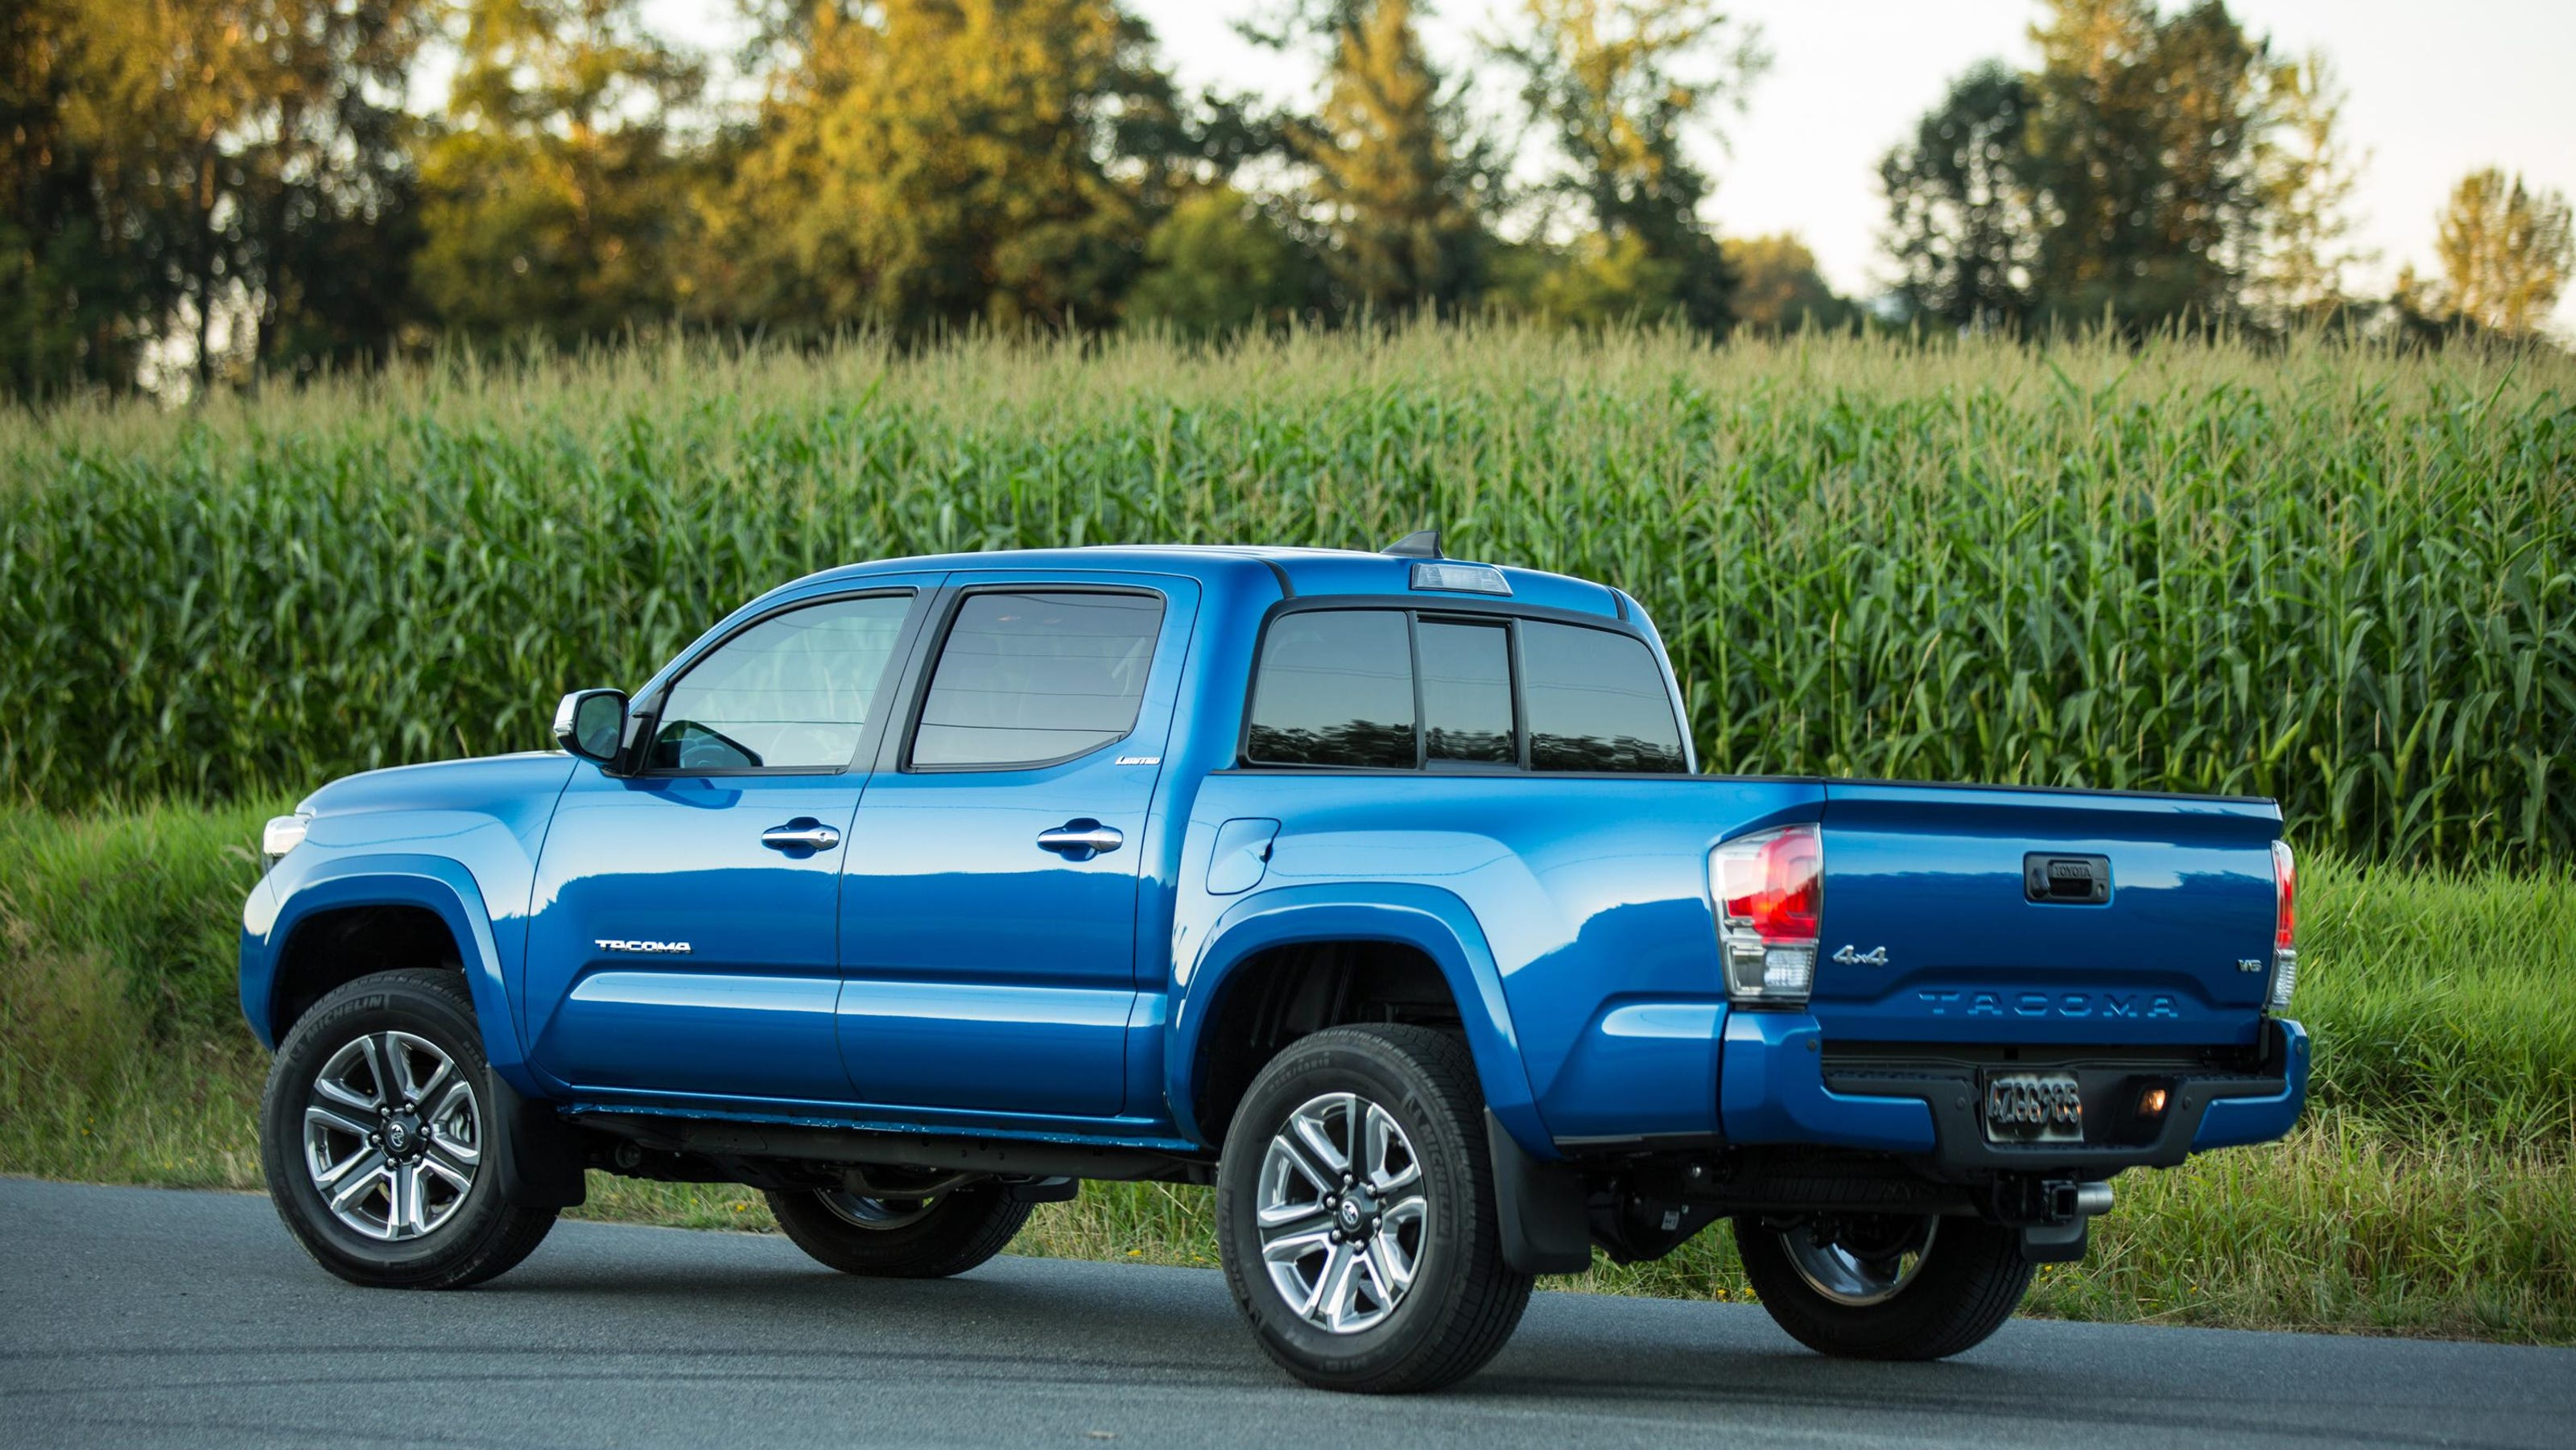 Toyota Ta a adds power and towing capacity for 2016